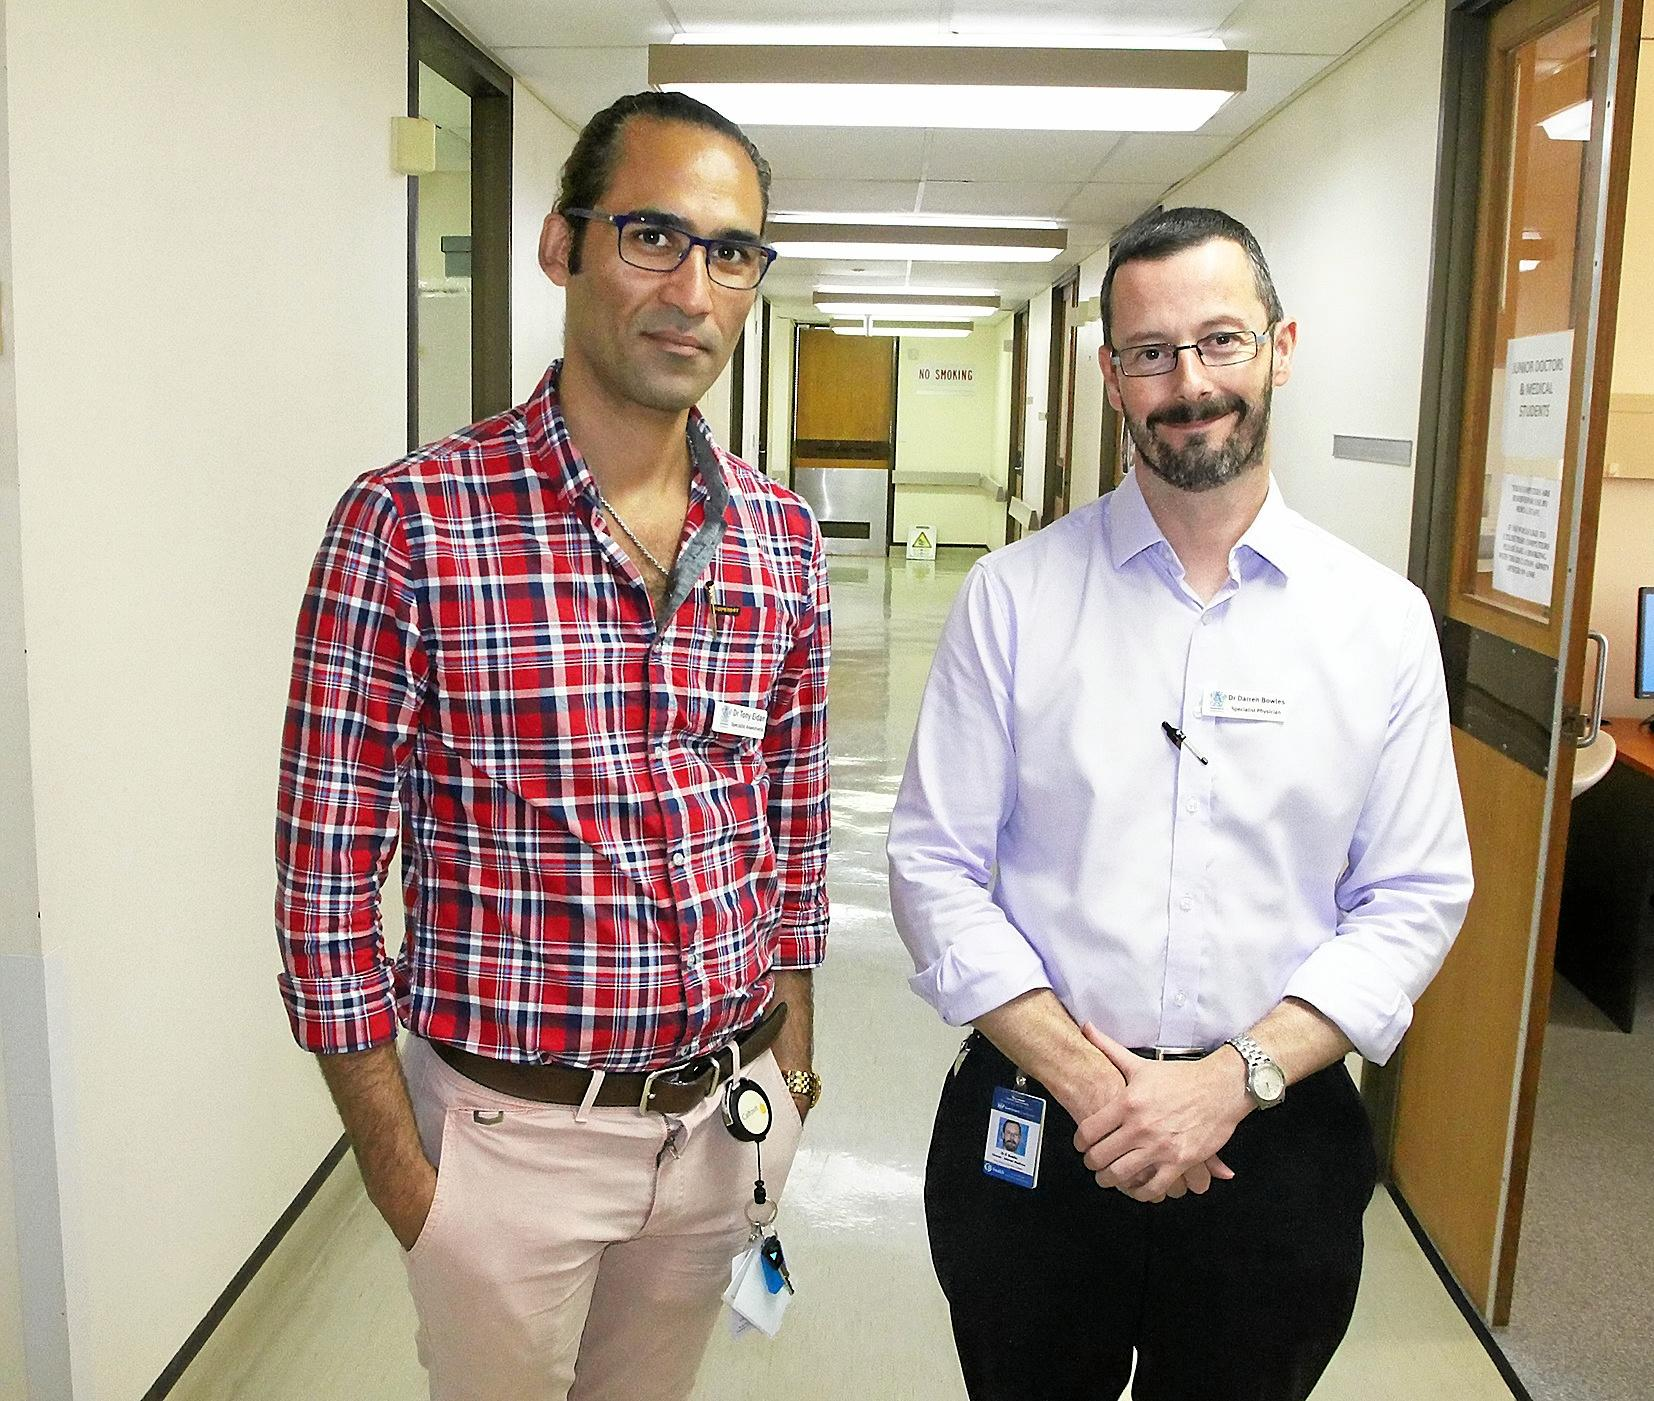 Gladstone Hospital's new clinical directors Dr Tony Eidan and Dr Darren Bowles bring years of experience.